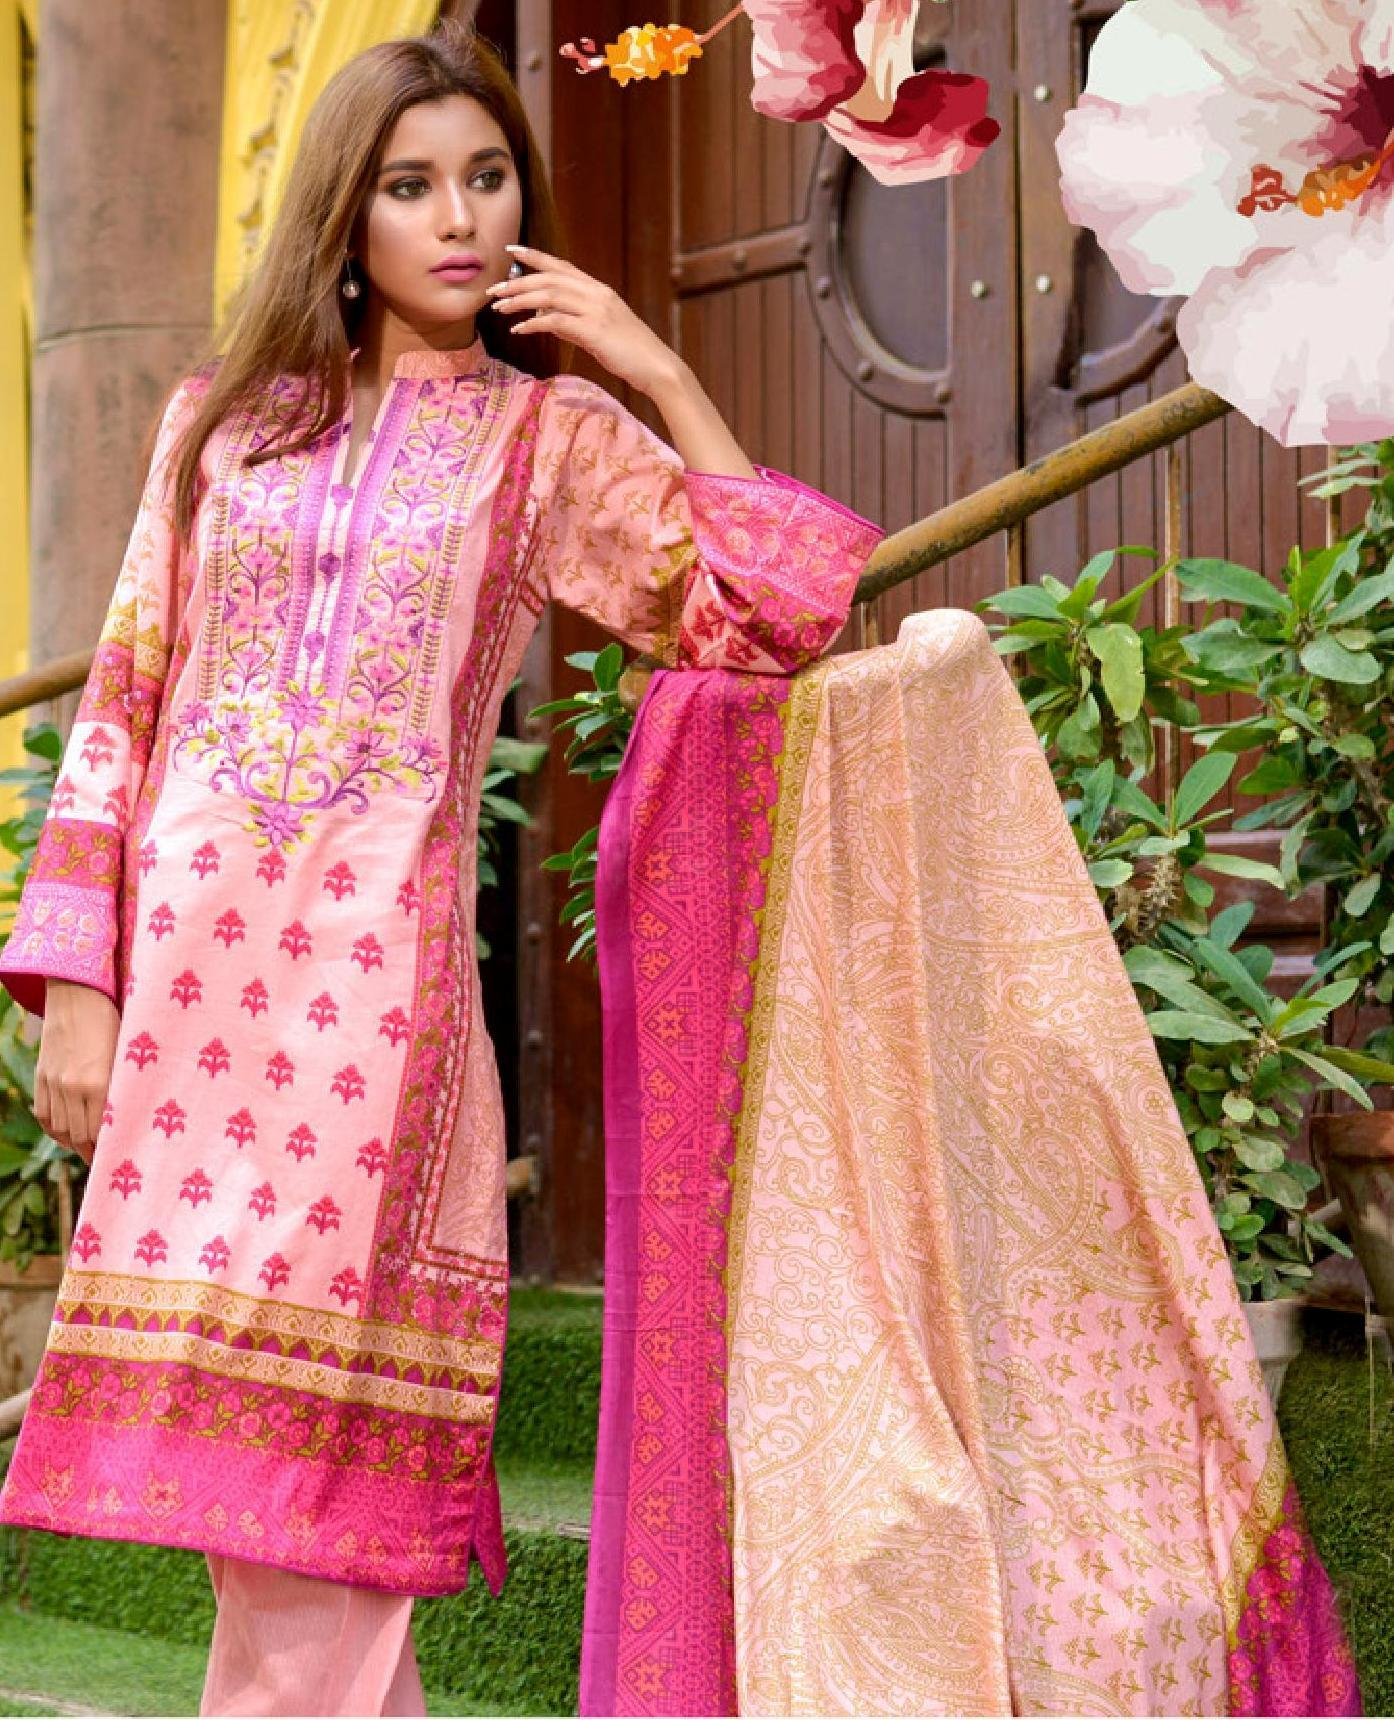 Online Stitched Party Dress Shopping In Pakistan   Lixnet AG